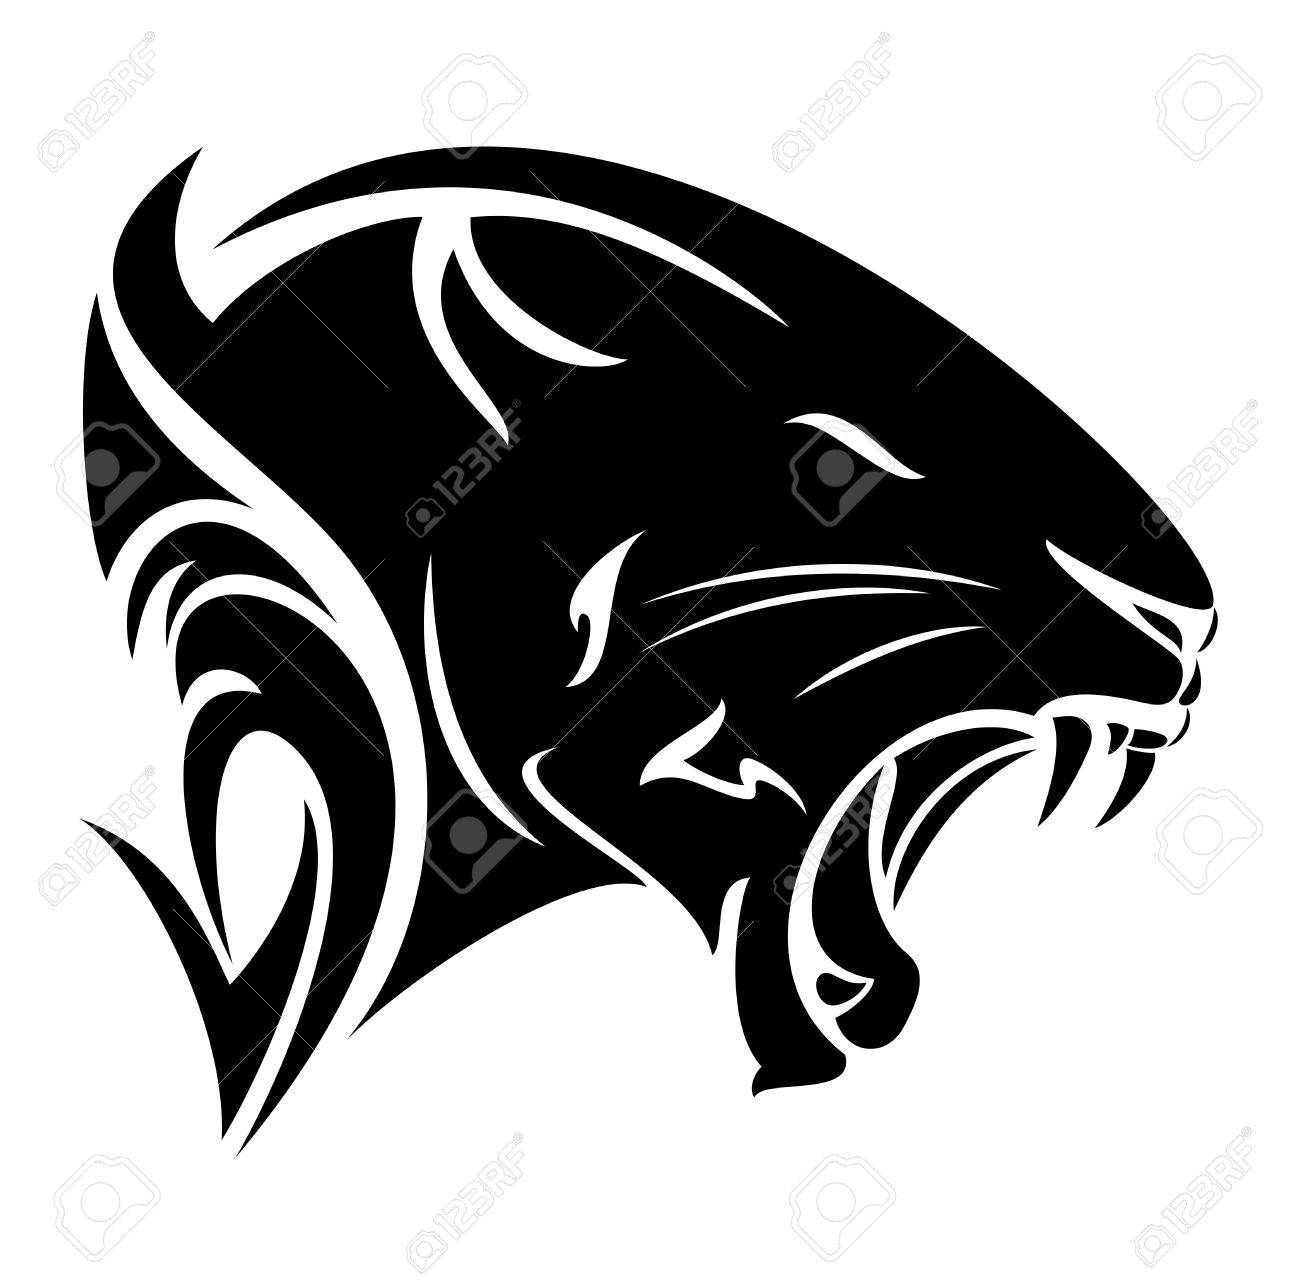 Black Panther Profile Head Roaring Big Cat Vector Design Royalty Free Cliparts Vectors And Stock Illustration Image 69428523